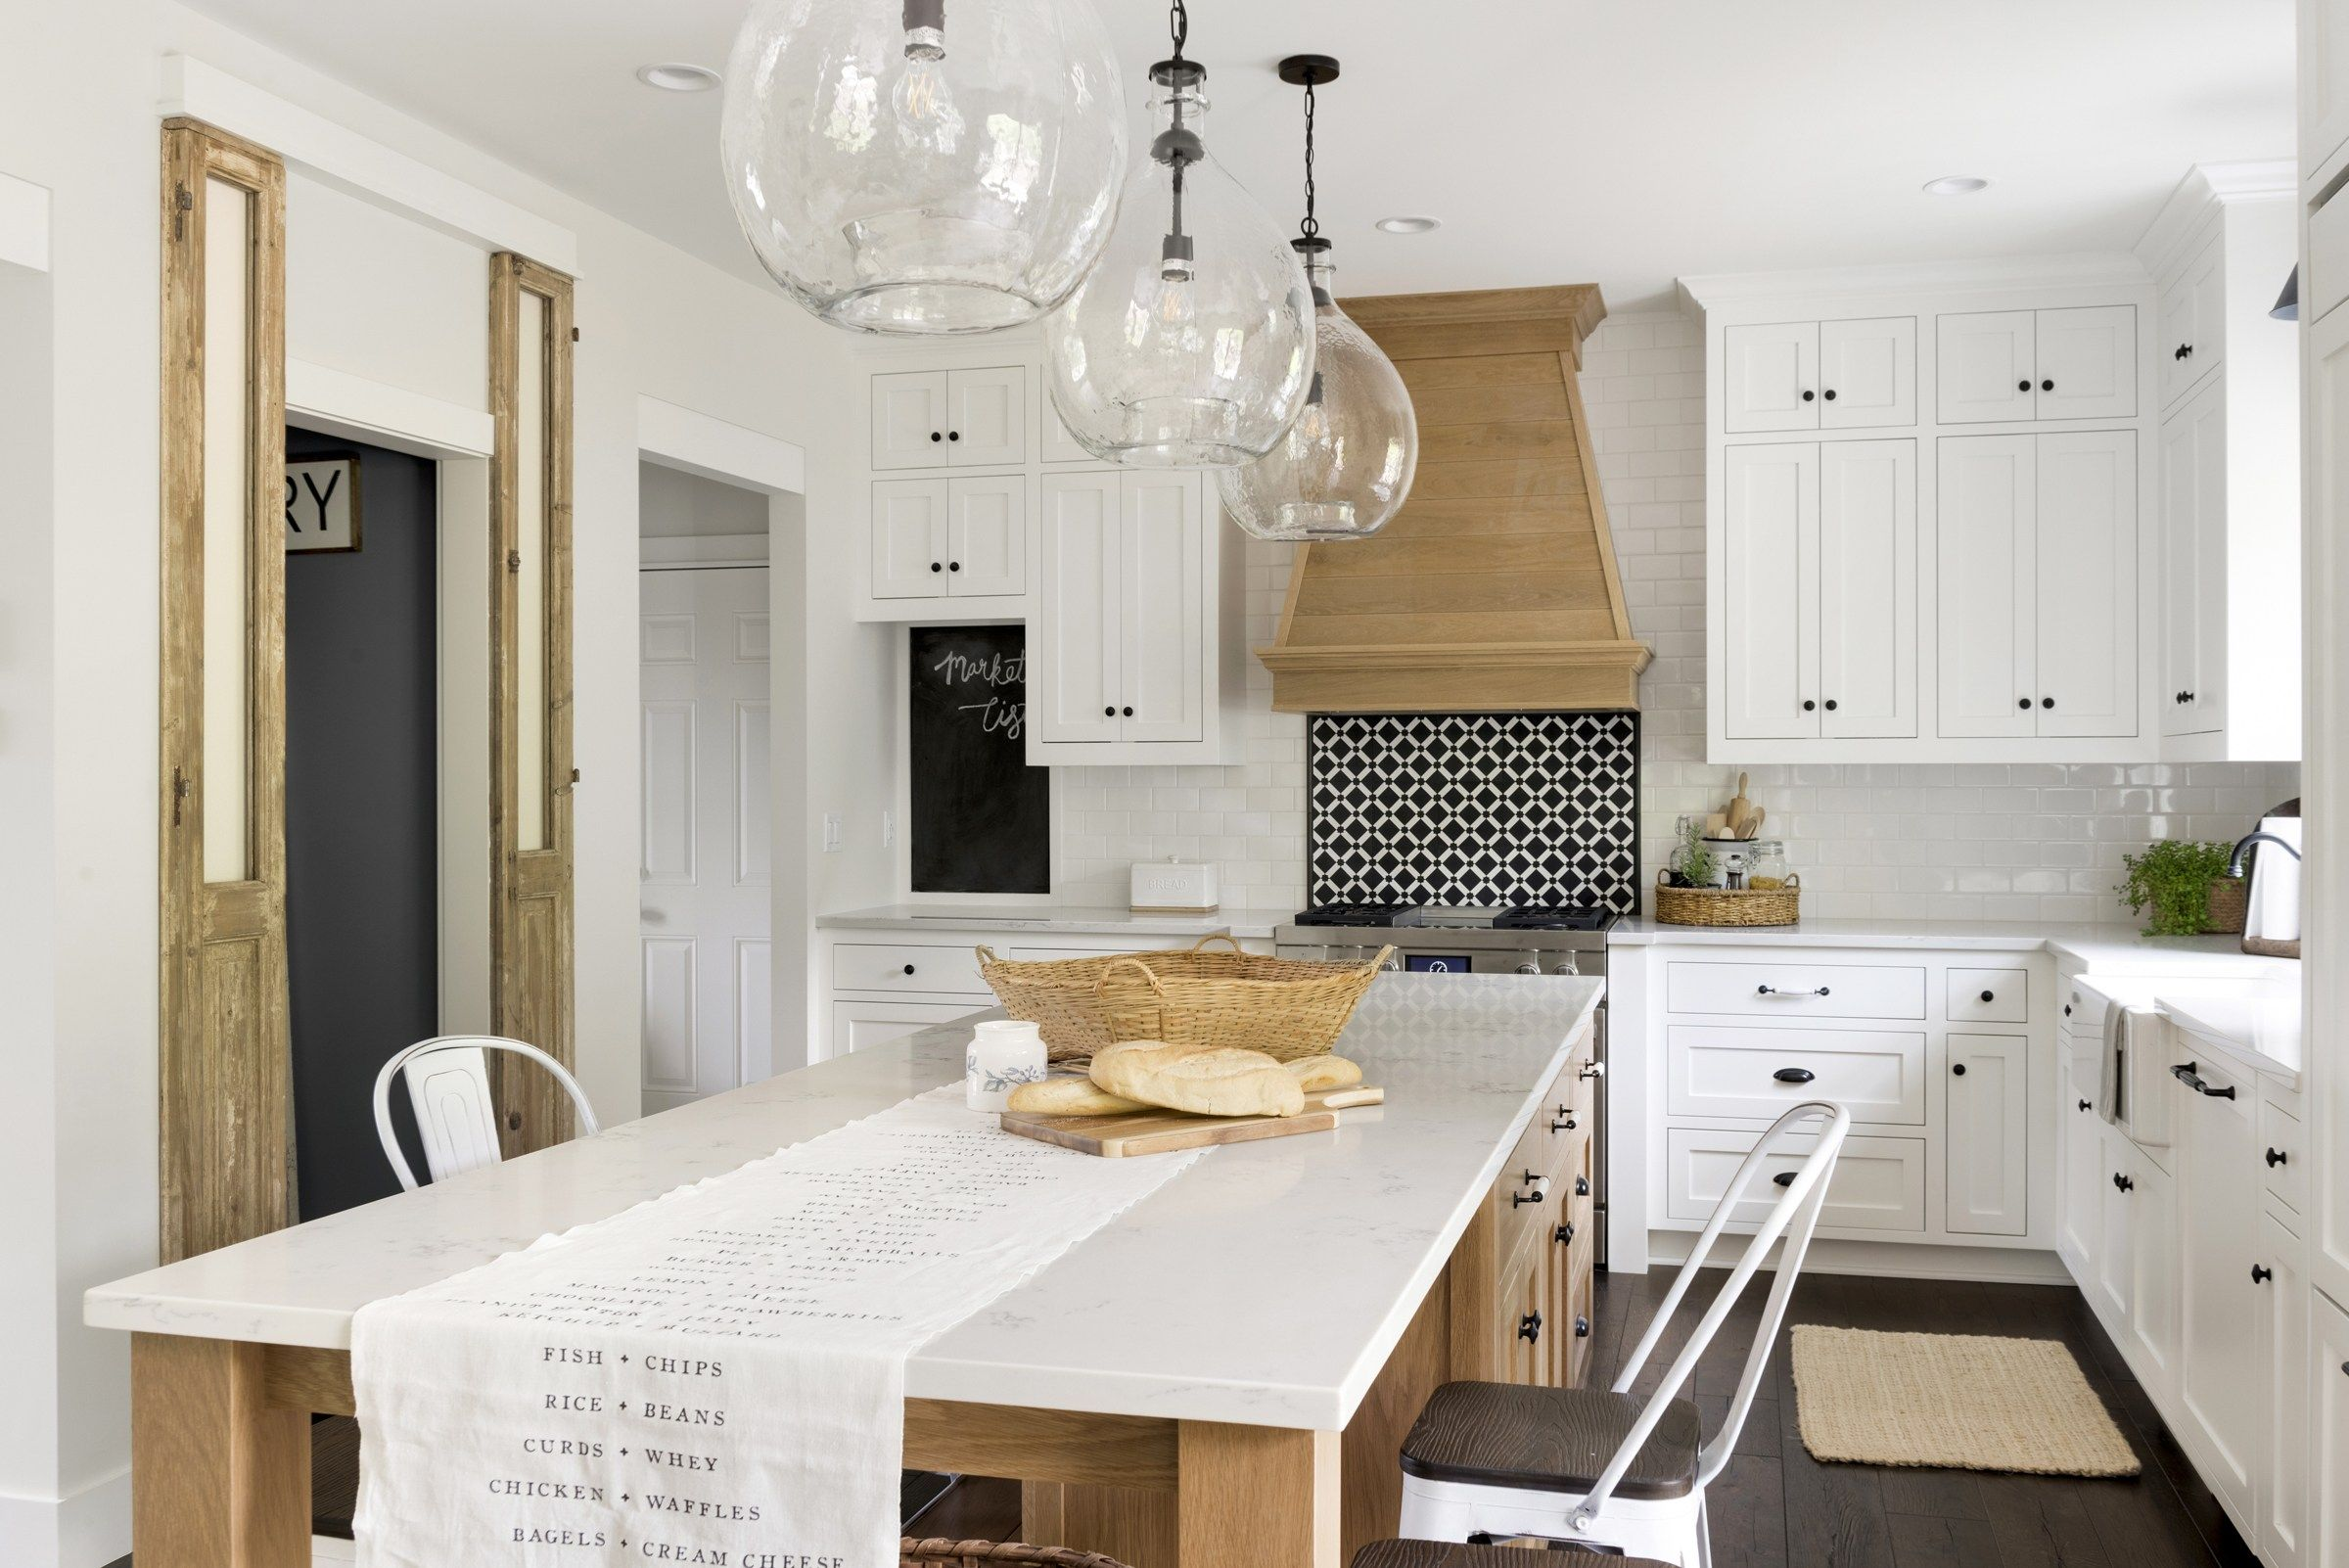 Modern French Country Kitchen Modern French Country Kitchen Island And Lighting Farmhouse